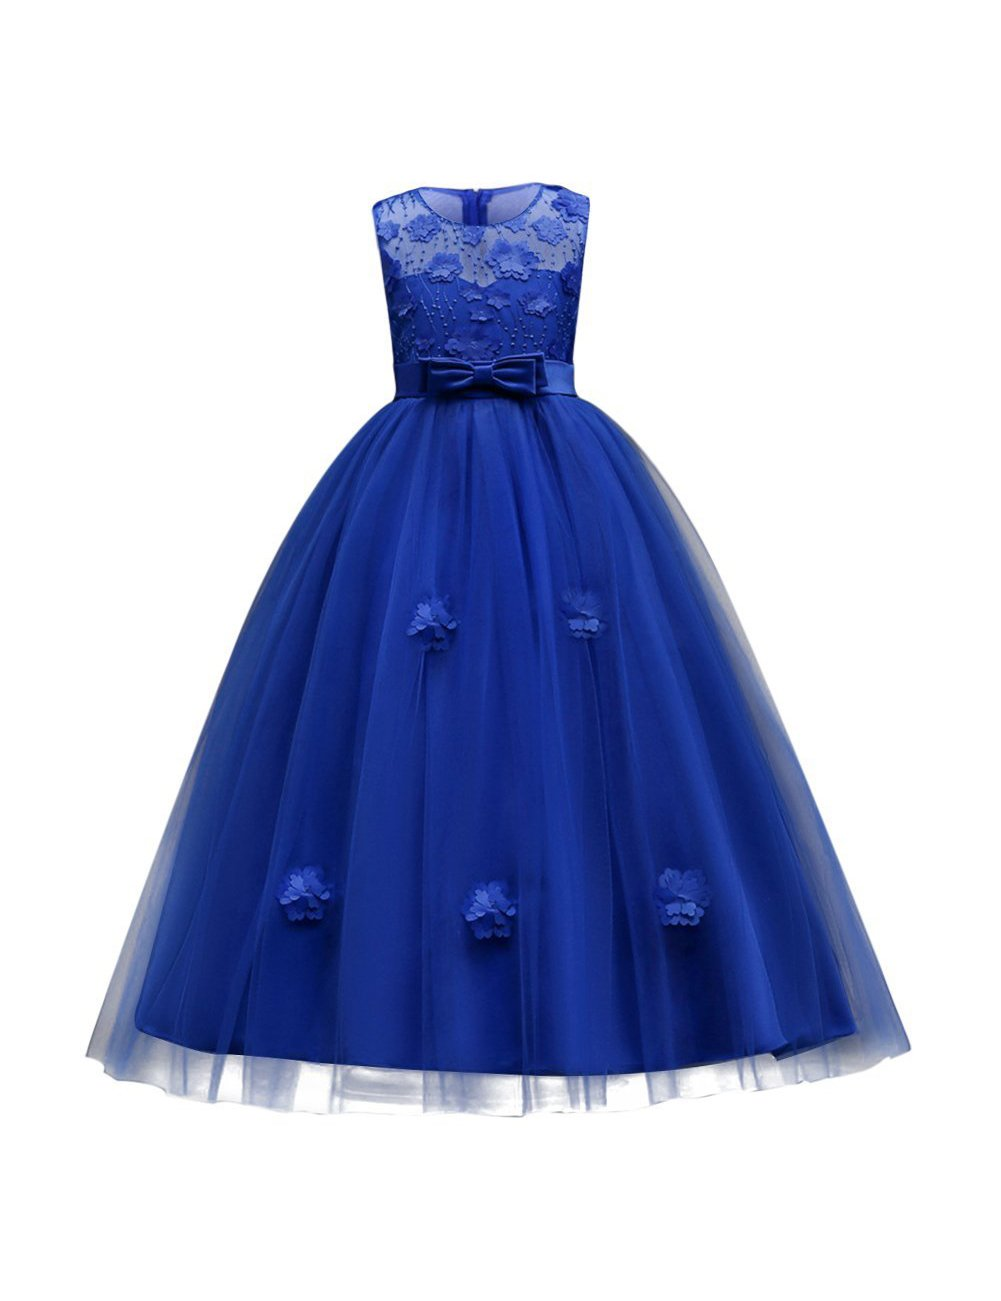 aibeiboutique Flower Girl Dresses Pageant Princess Bridesmaid Dress for Wedding First Communion (7-8 Years, Royal Blue)